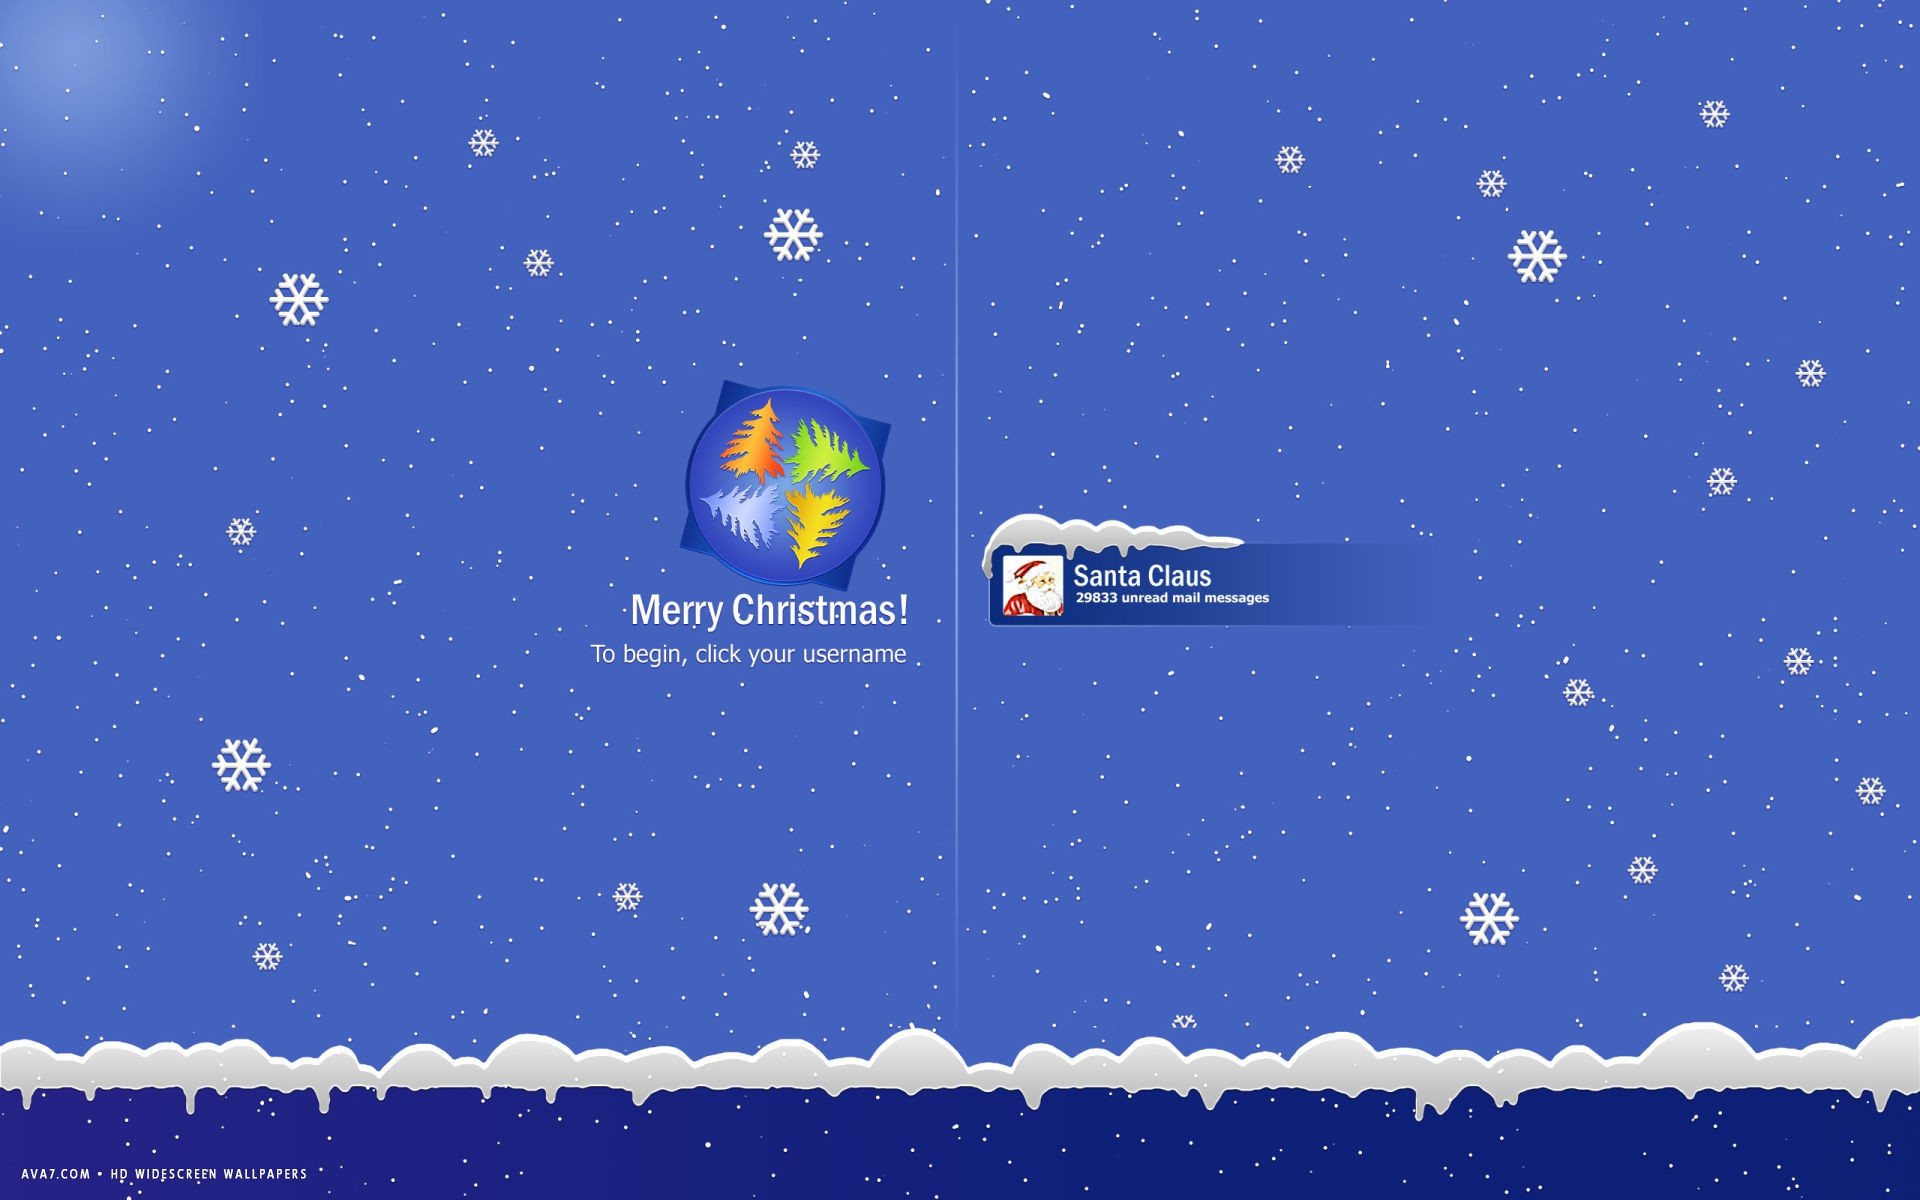 1920x1200 merry christmas windows login santa claus mail messages funny holiday hd  widescreen wallpaper